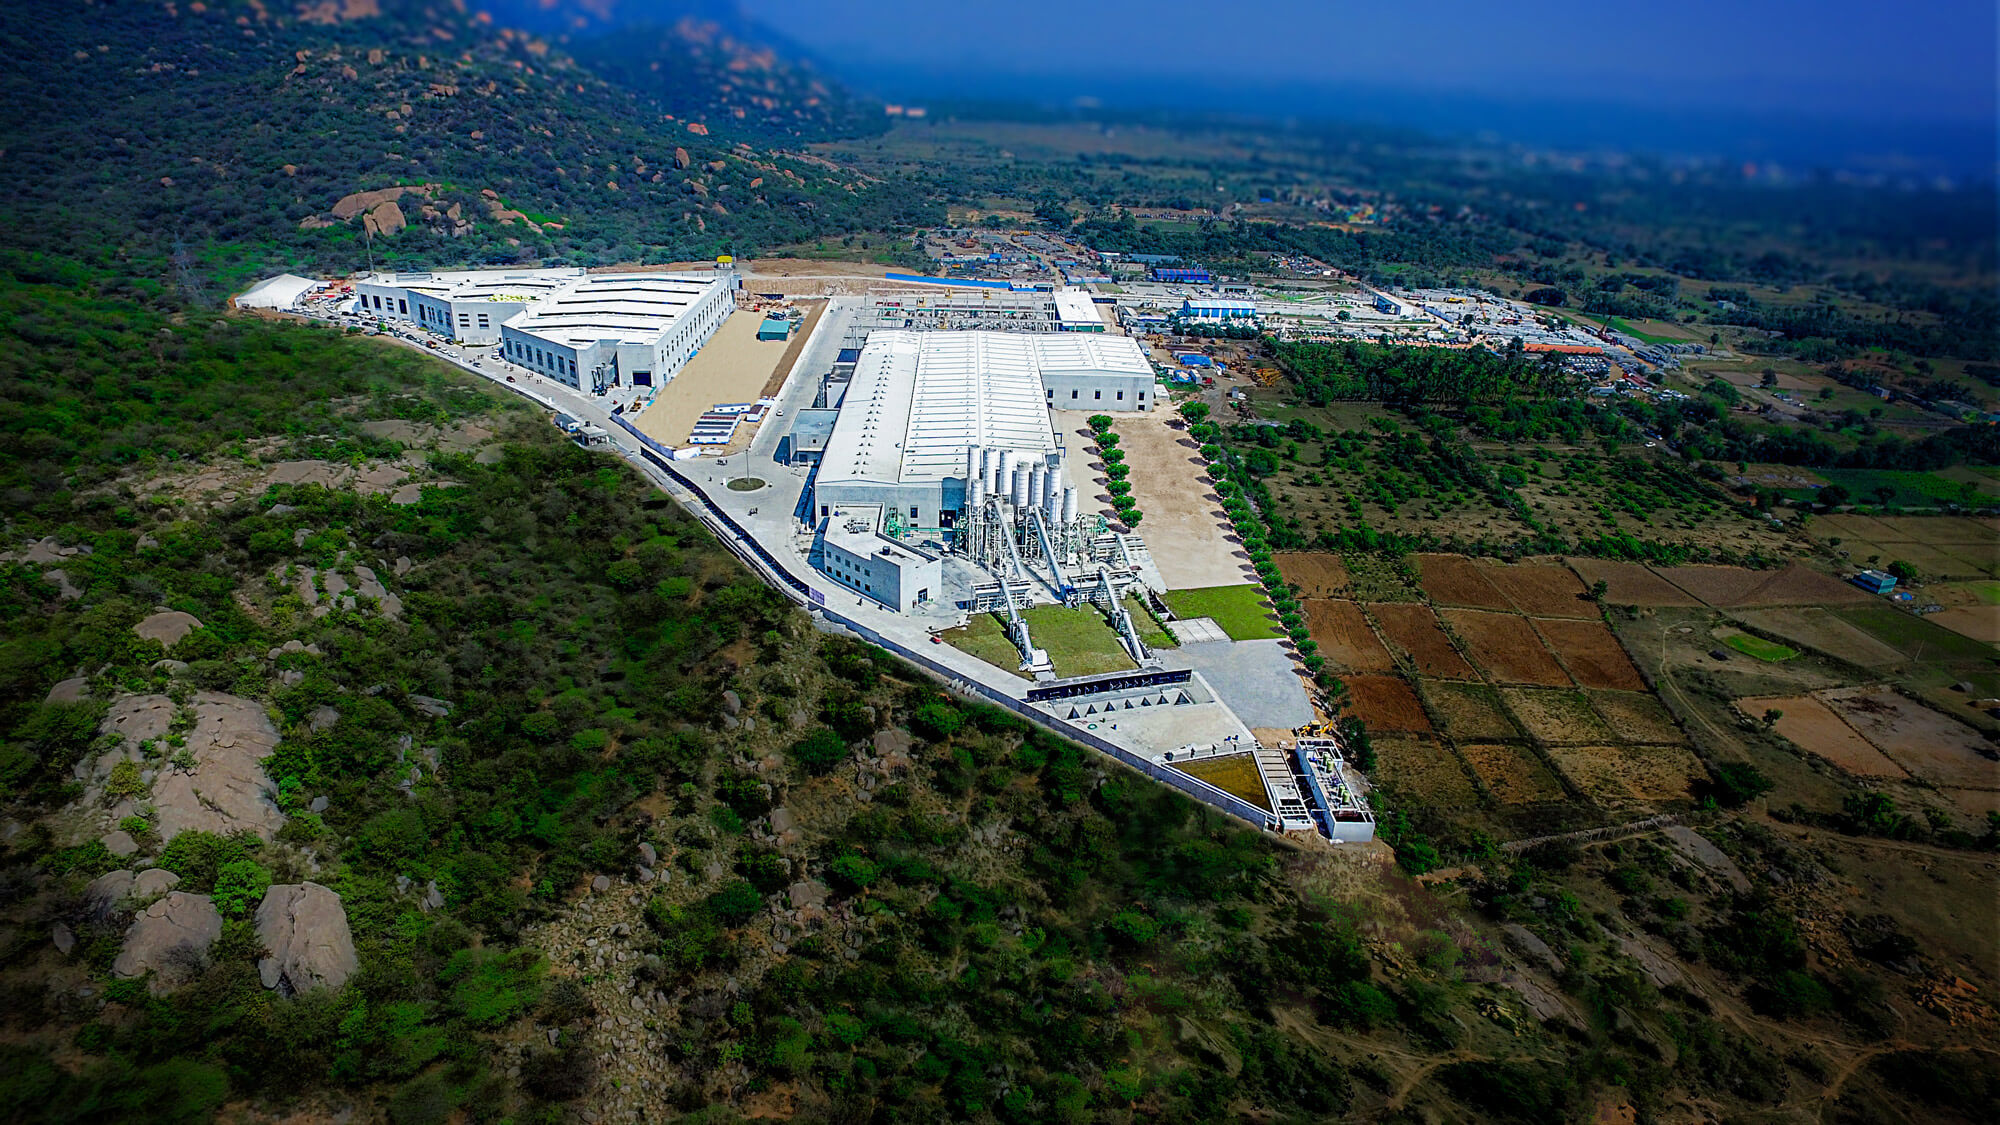 Aerial view of At KEF Infra's prefabrication and modular construction plant in Krishnagiri, India.